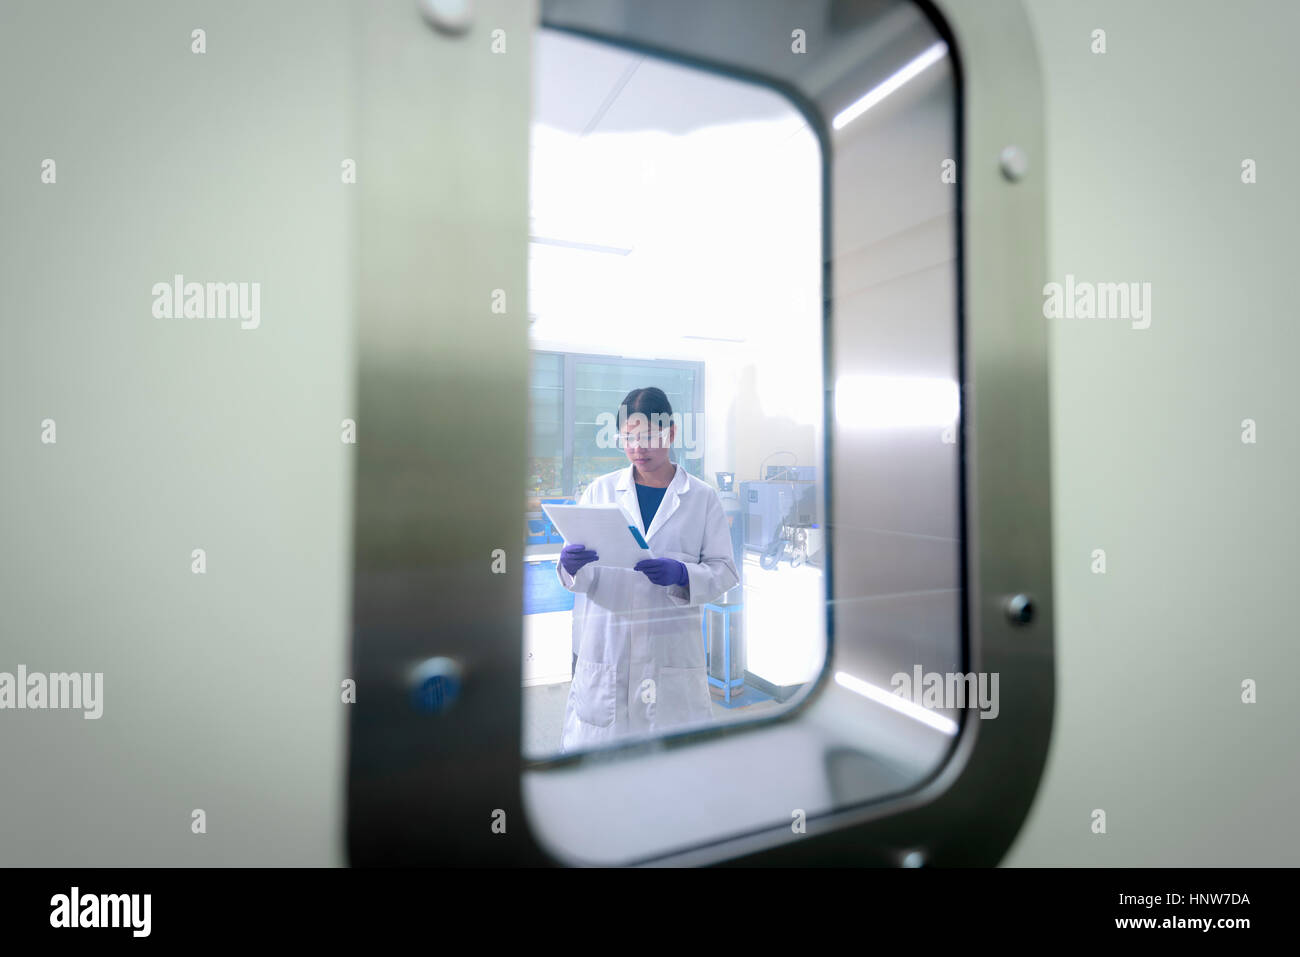 Scientist working in crystal engineering research laboratory - Stock Image